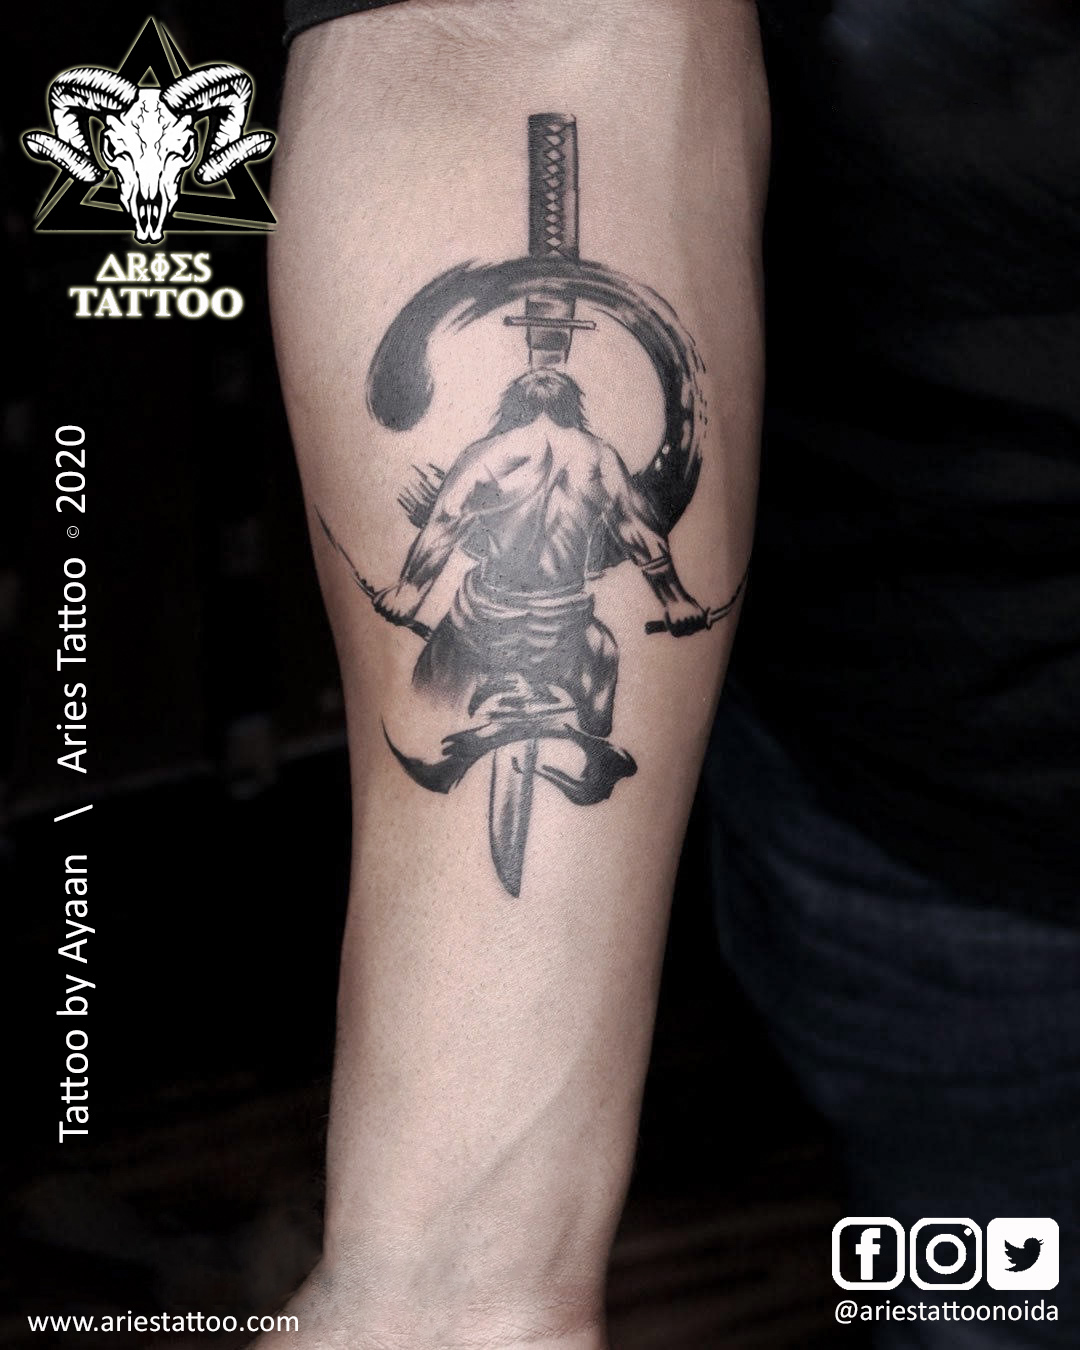 warriors tattoo sword ayaan | |Aries Tattoo Noida | Tattoo Shop and Studio In Noida